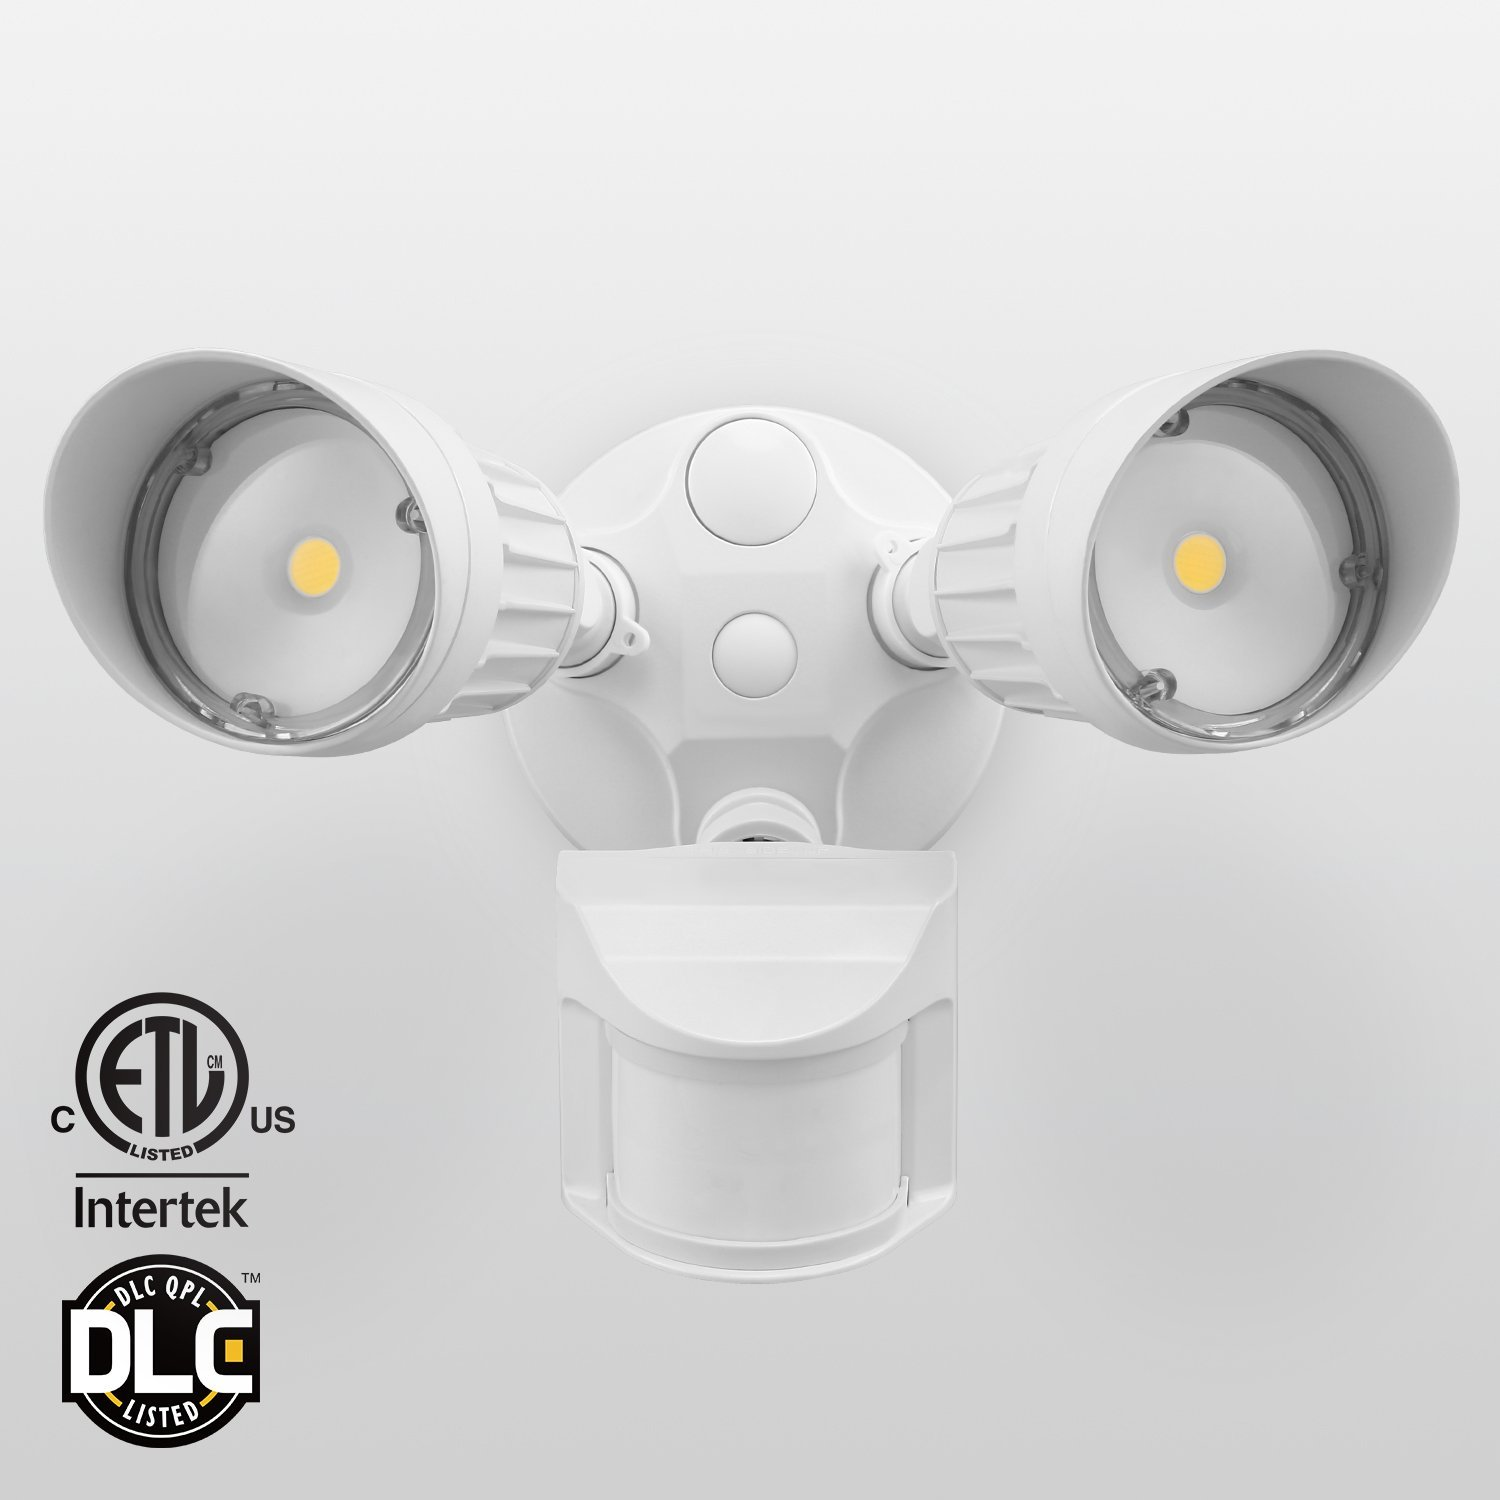 LEONLITE Dual-Head Motion-Activated LED Outdoor Security Light, Photocell Included, ETL & DLC Listed, 20W (120W Equiv.), 3 Lighting Modes, 5000K Daylight, White